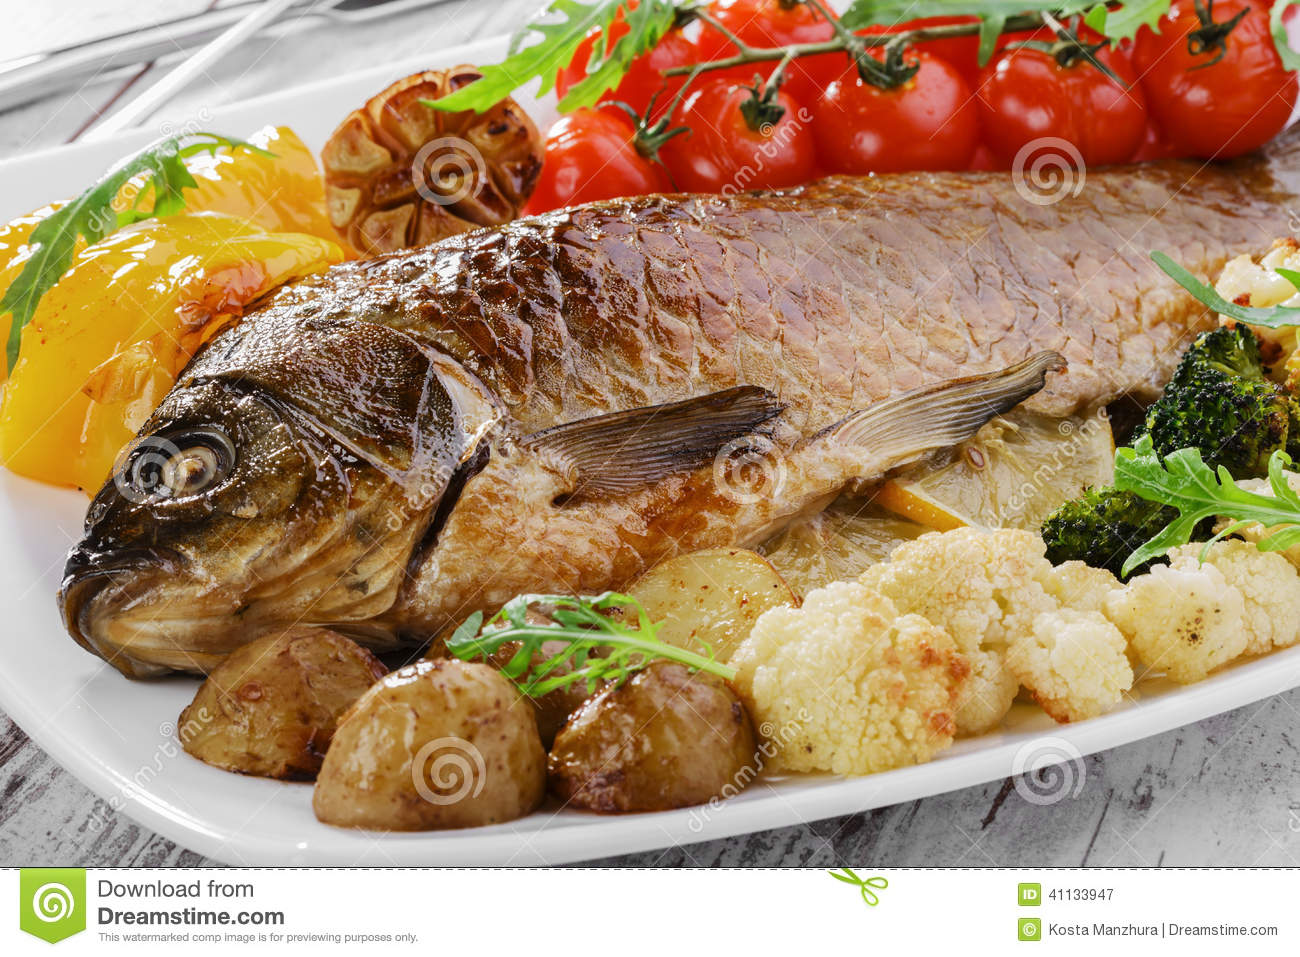 Baked fish with vegetables stock photo image 41133947 for What vegetables go with fish